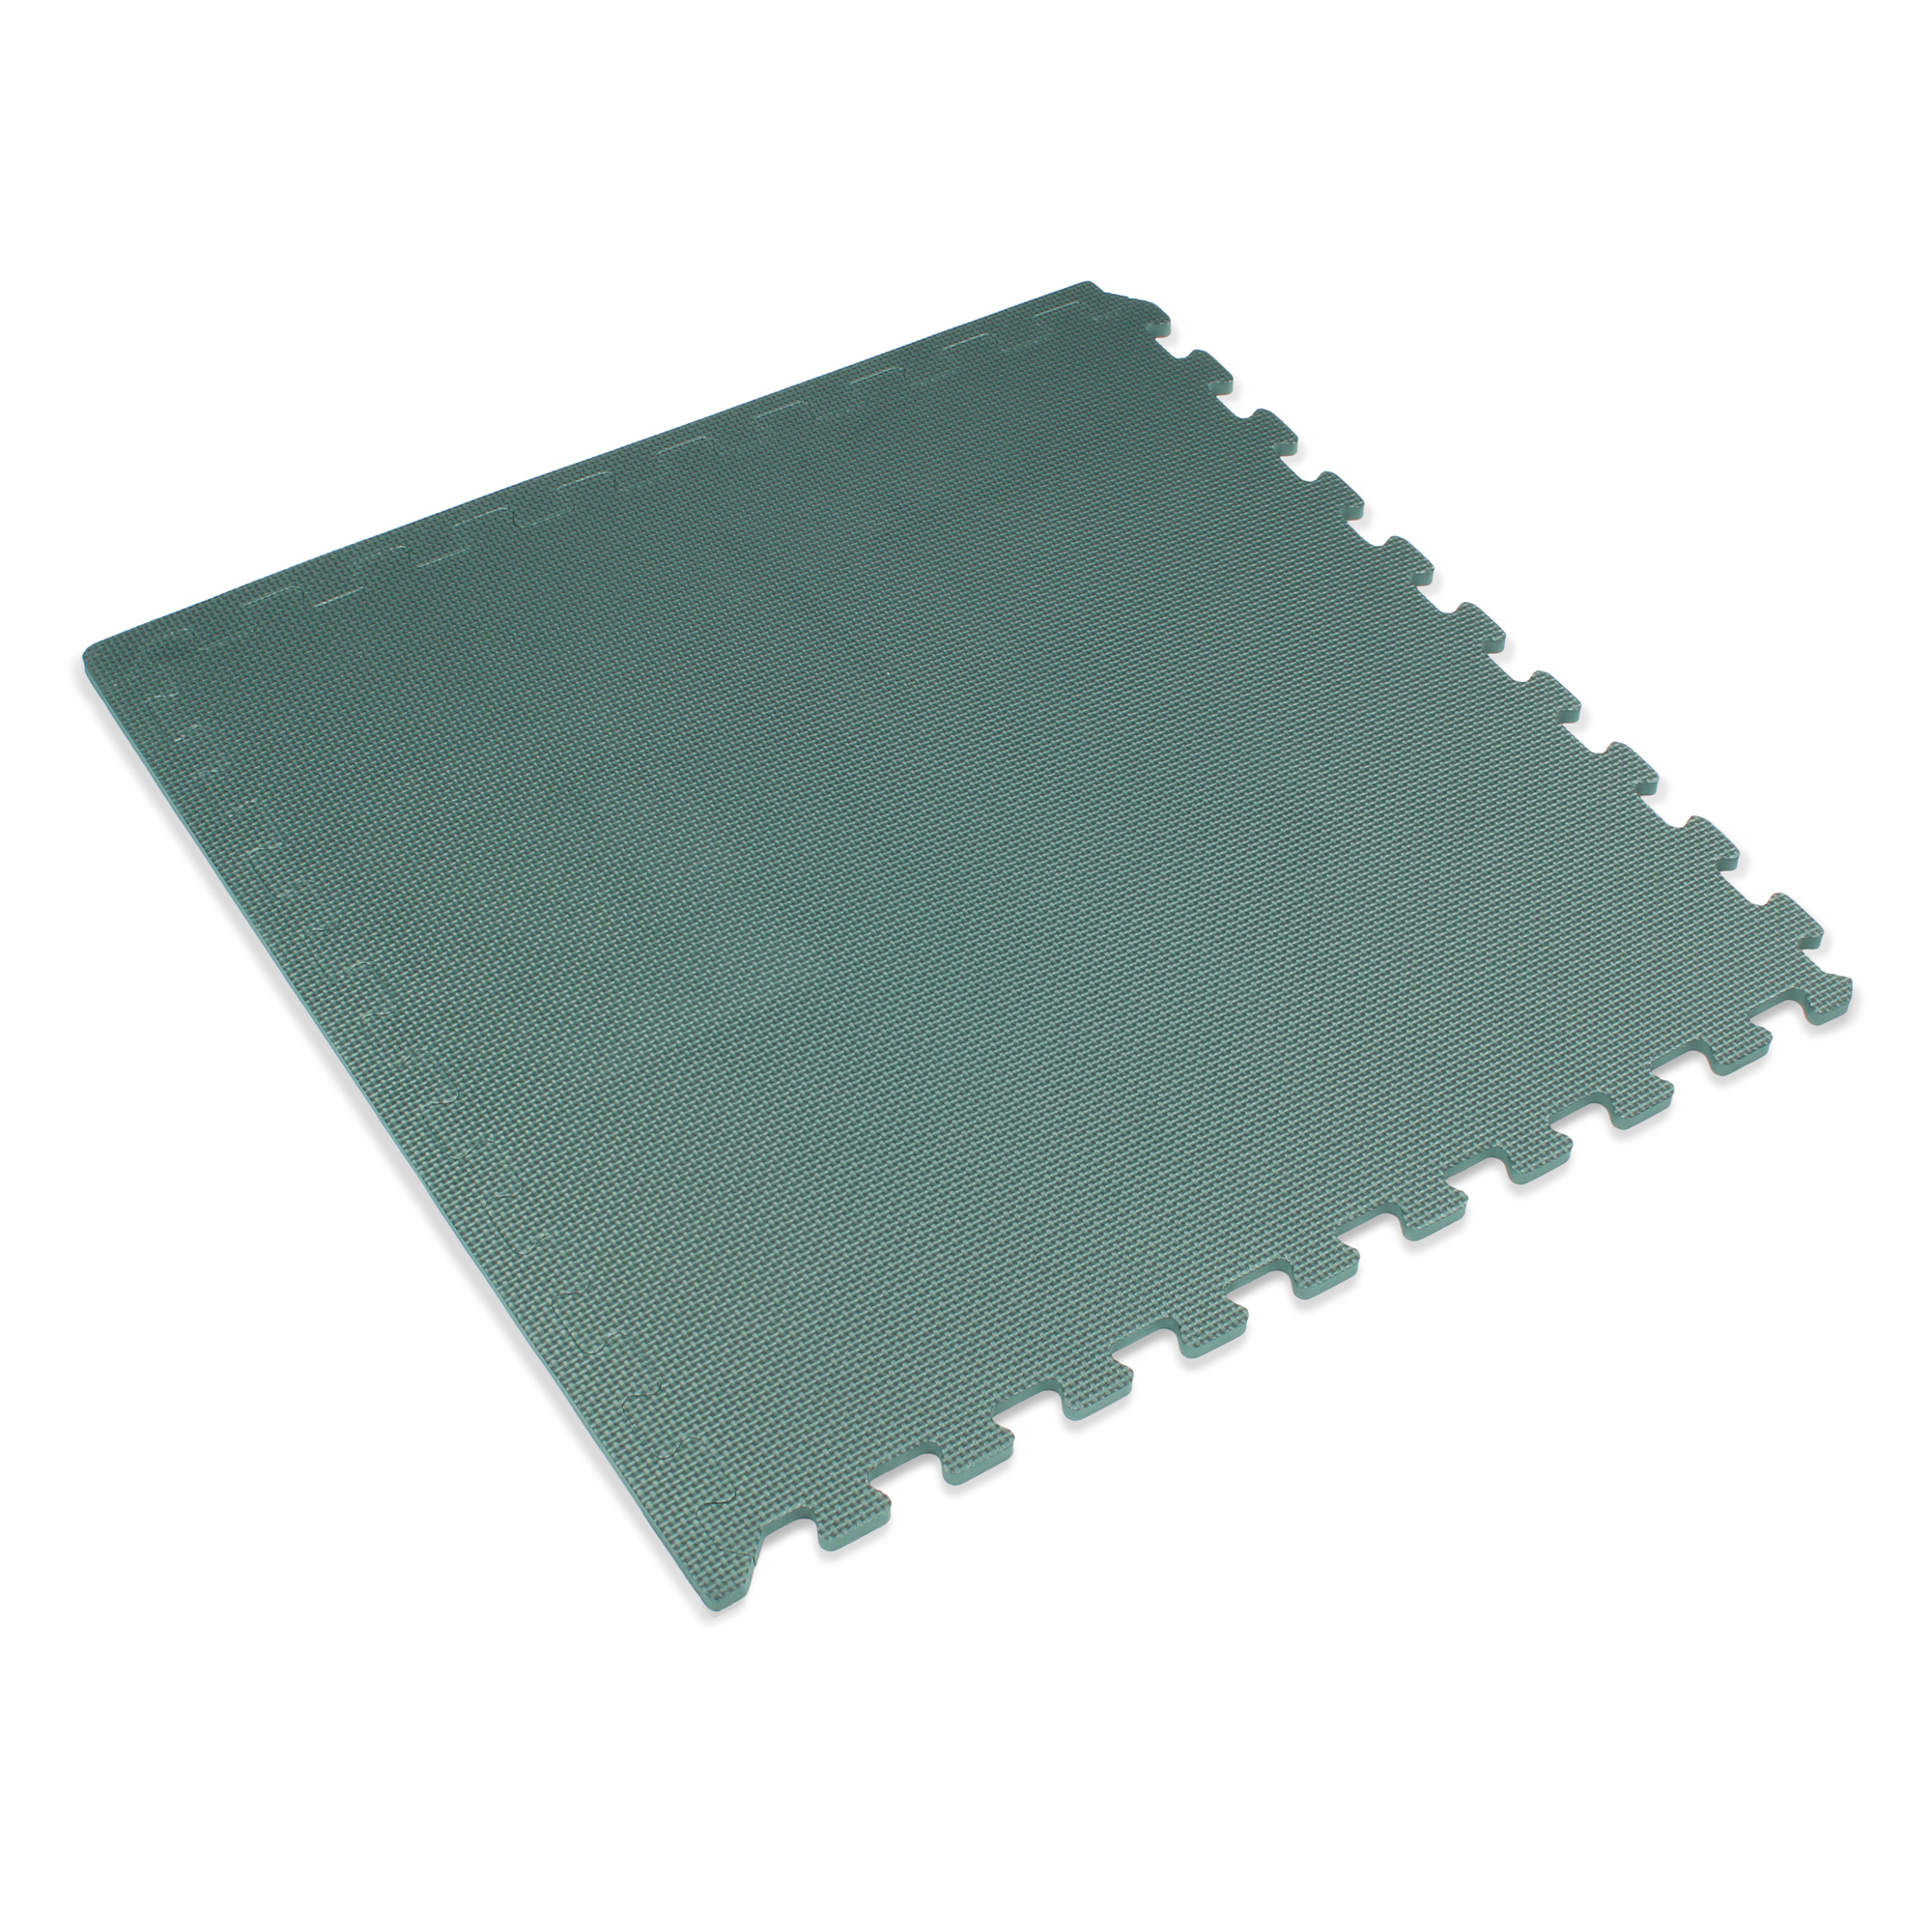 product the large system designed scale for interlocking new and news interlock mats quickly lifting easily are multi mat to